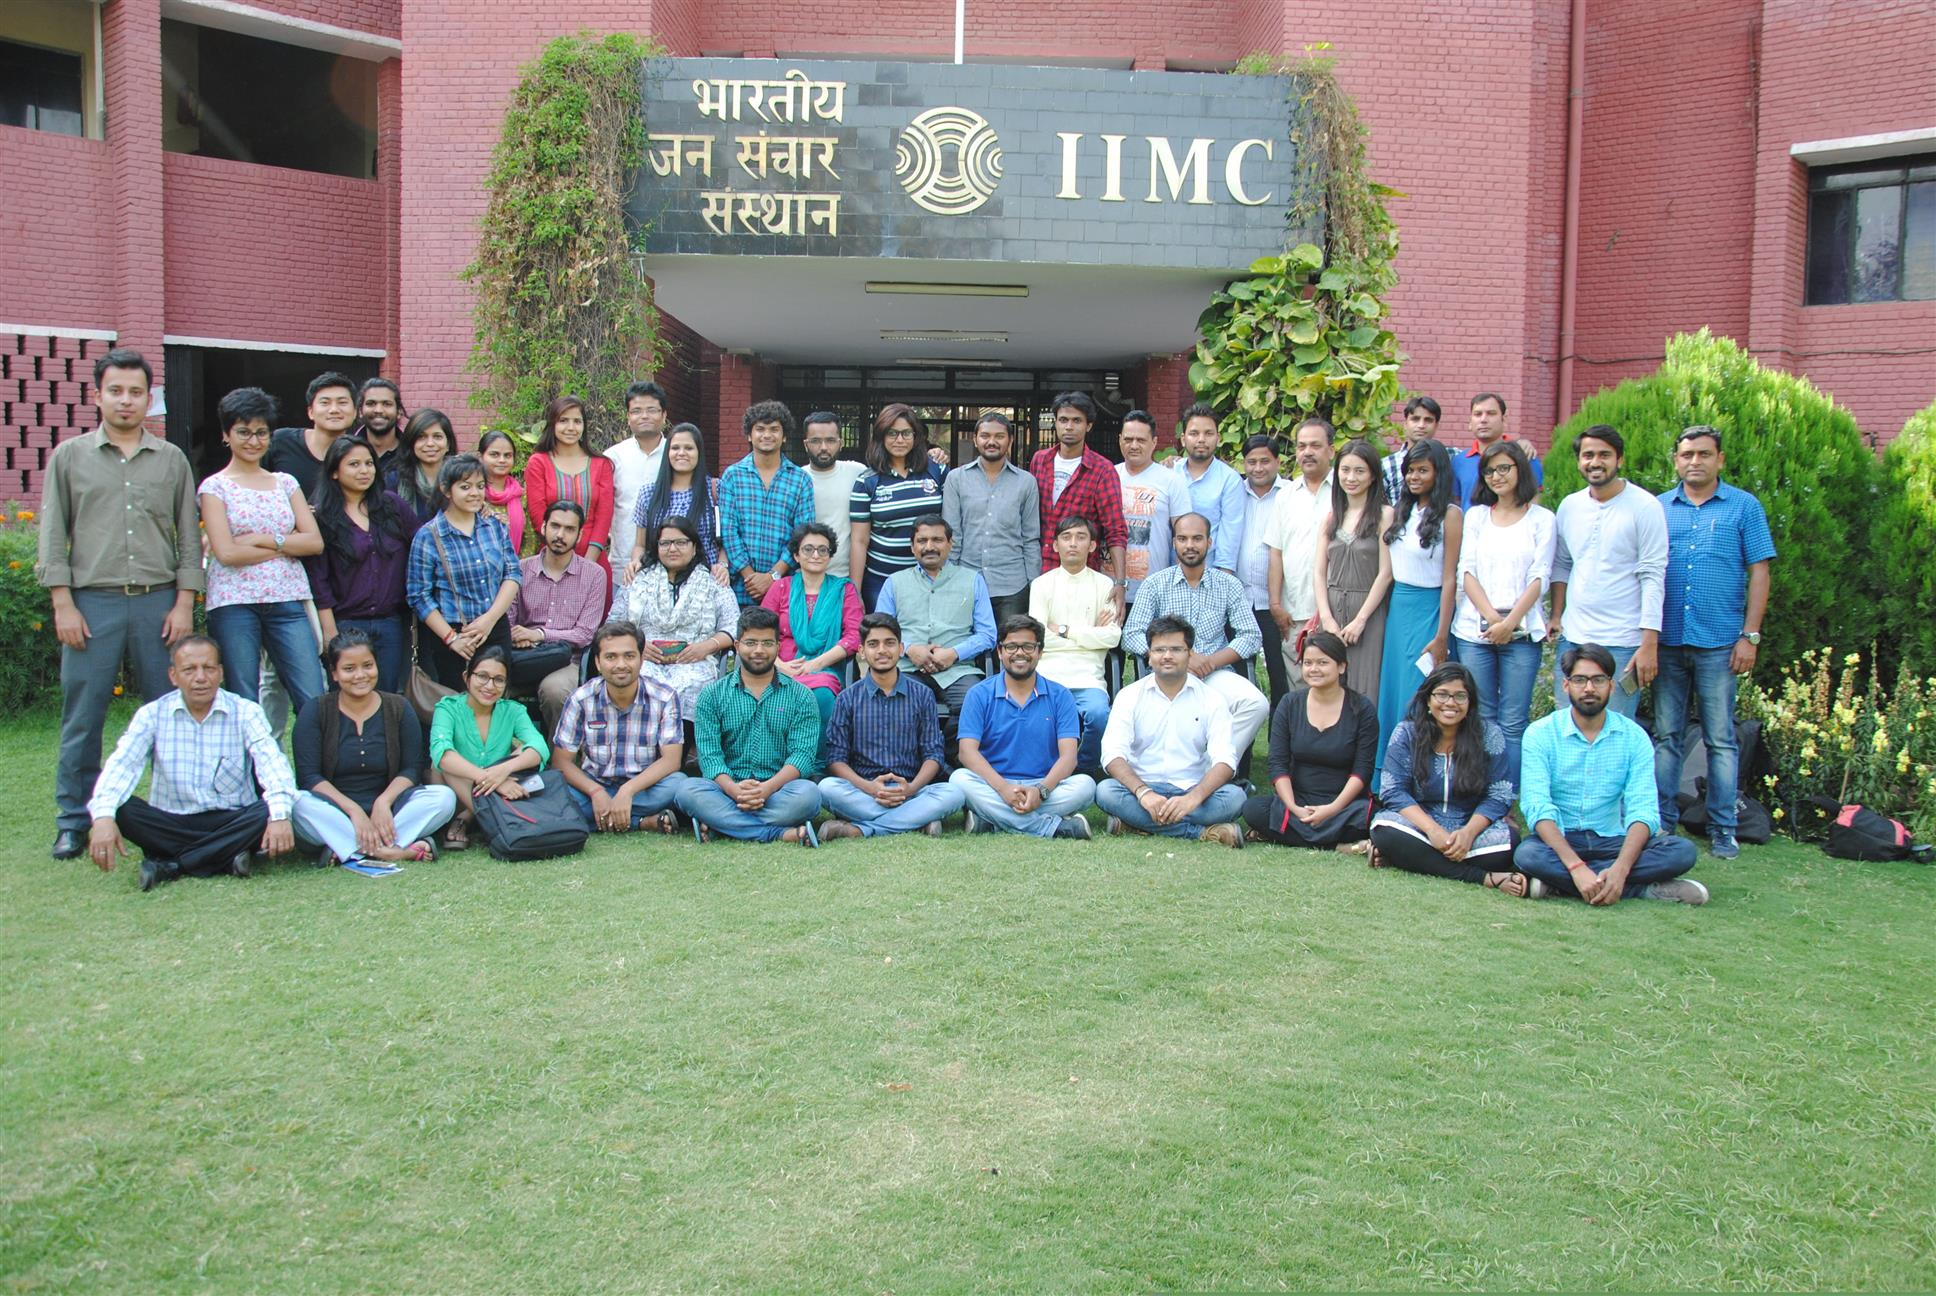 IIMC Result 2018 for Entrance Exam – Check Here